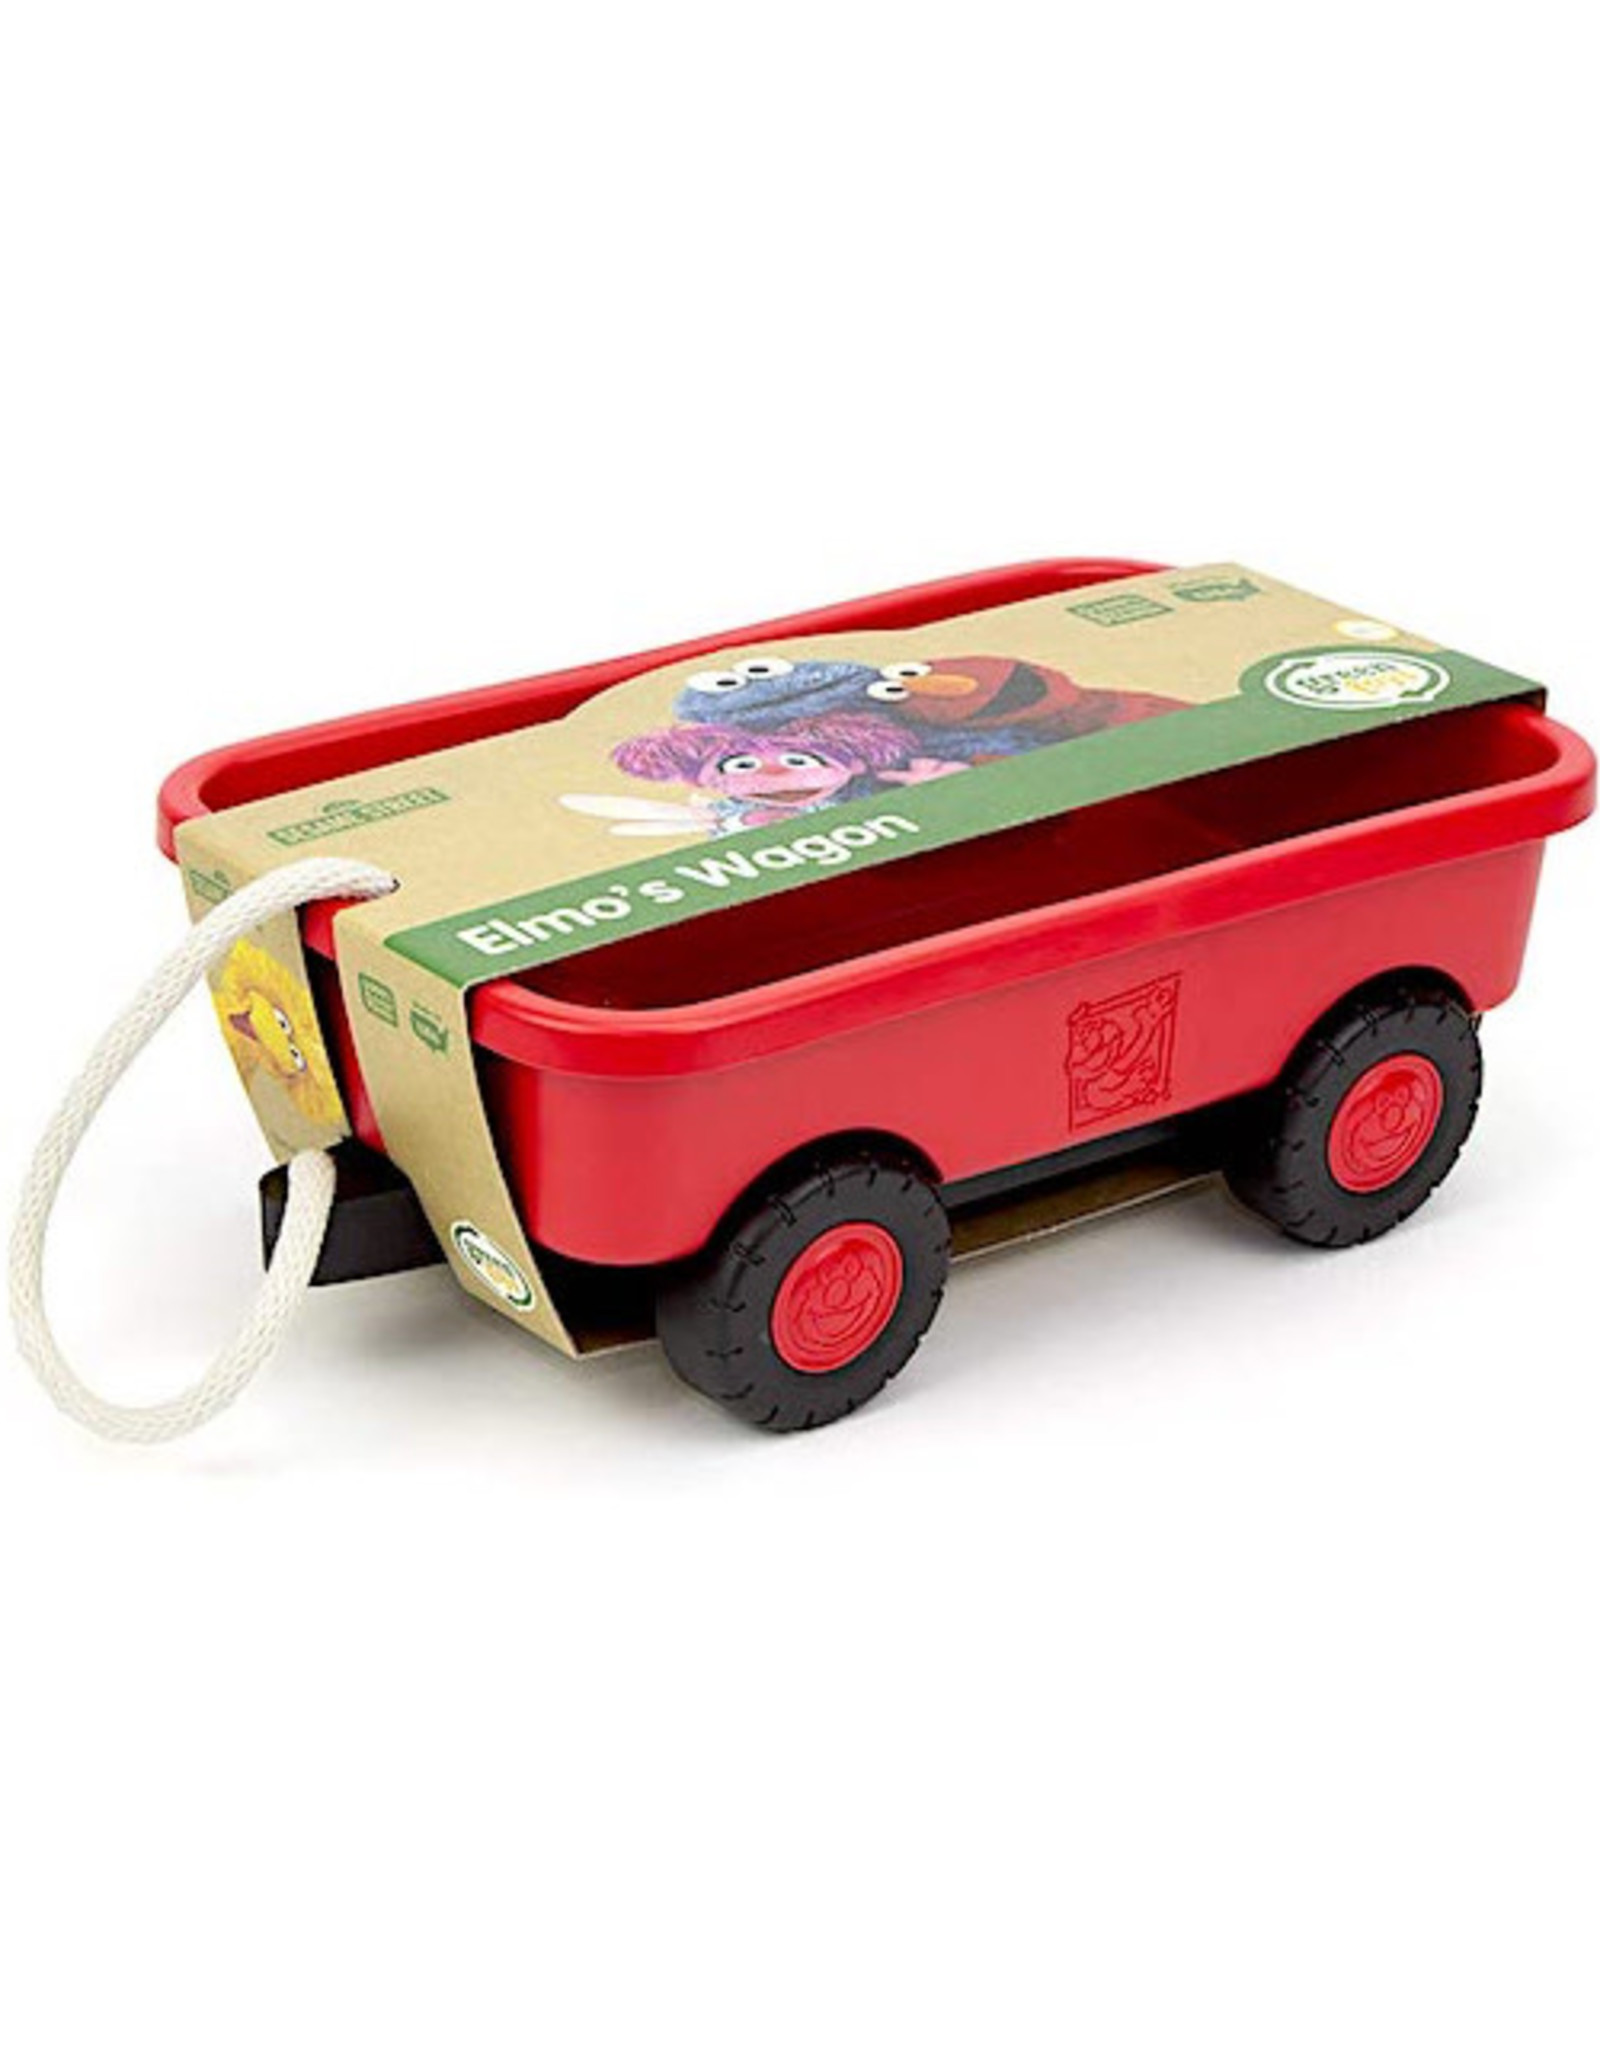 Green Toys Elmo's Wagon